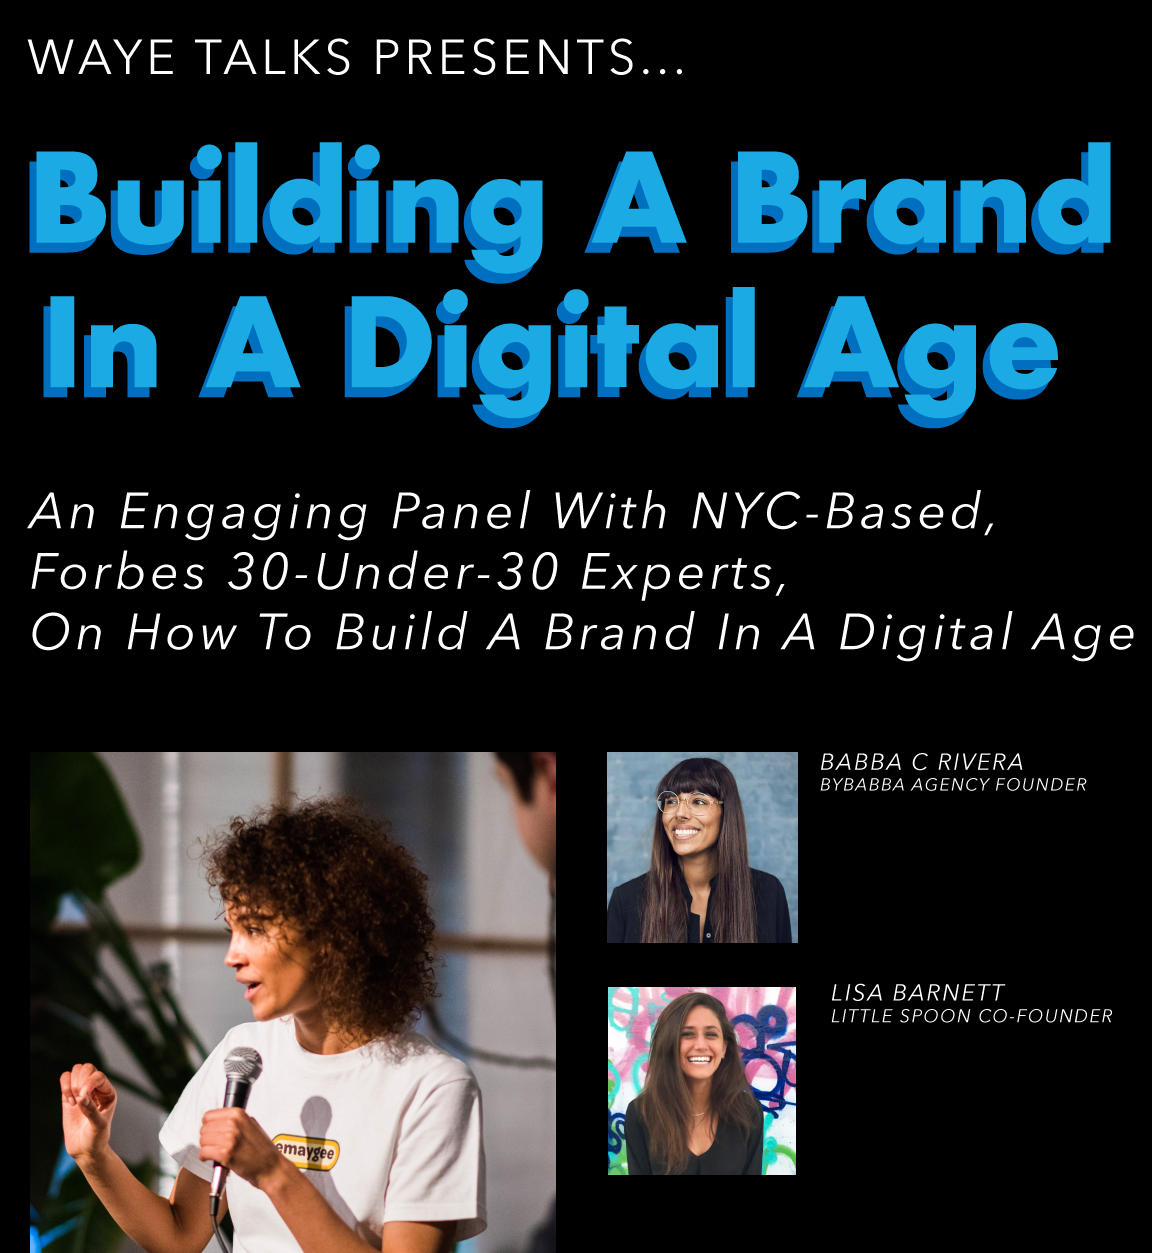 Building A Brand In A Digital Age - Wednesday, July 11th 6:00pm - 8:00pm